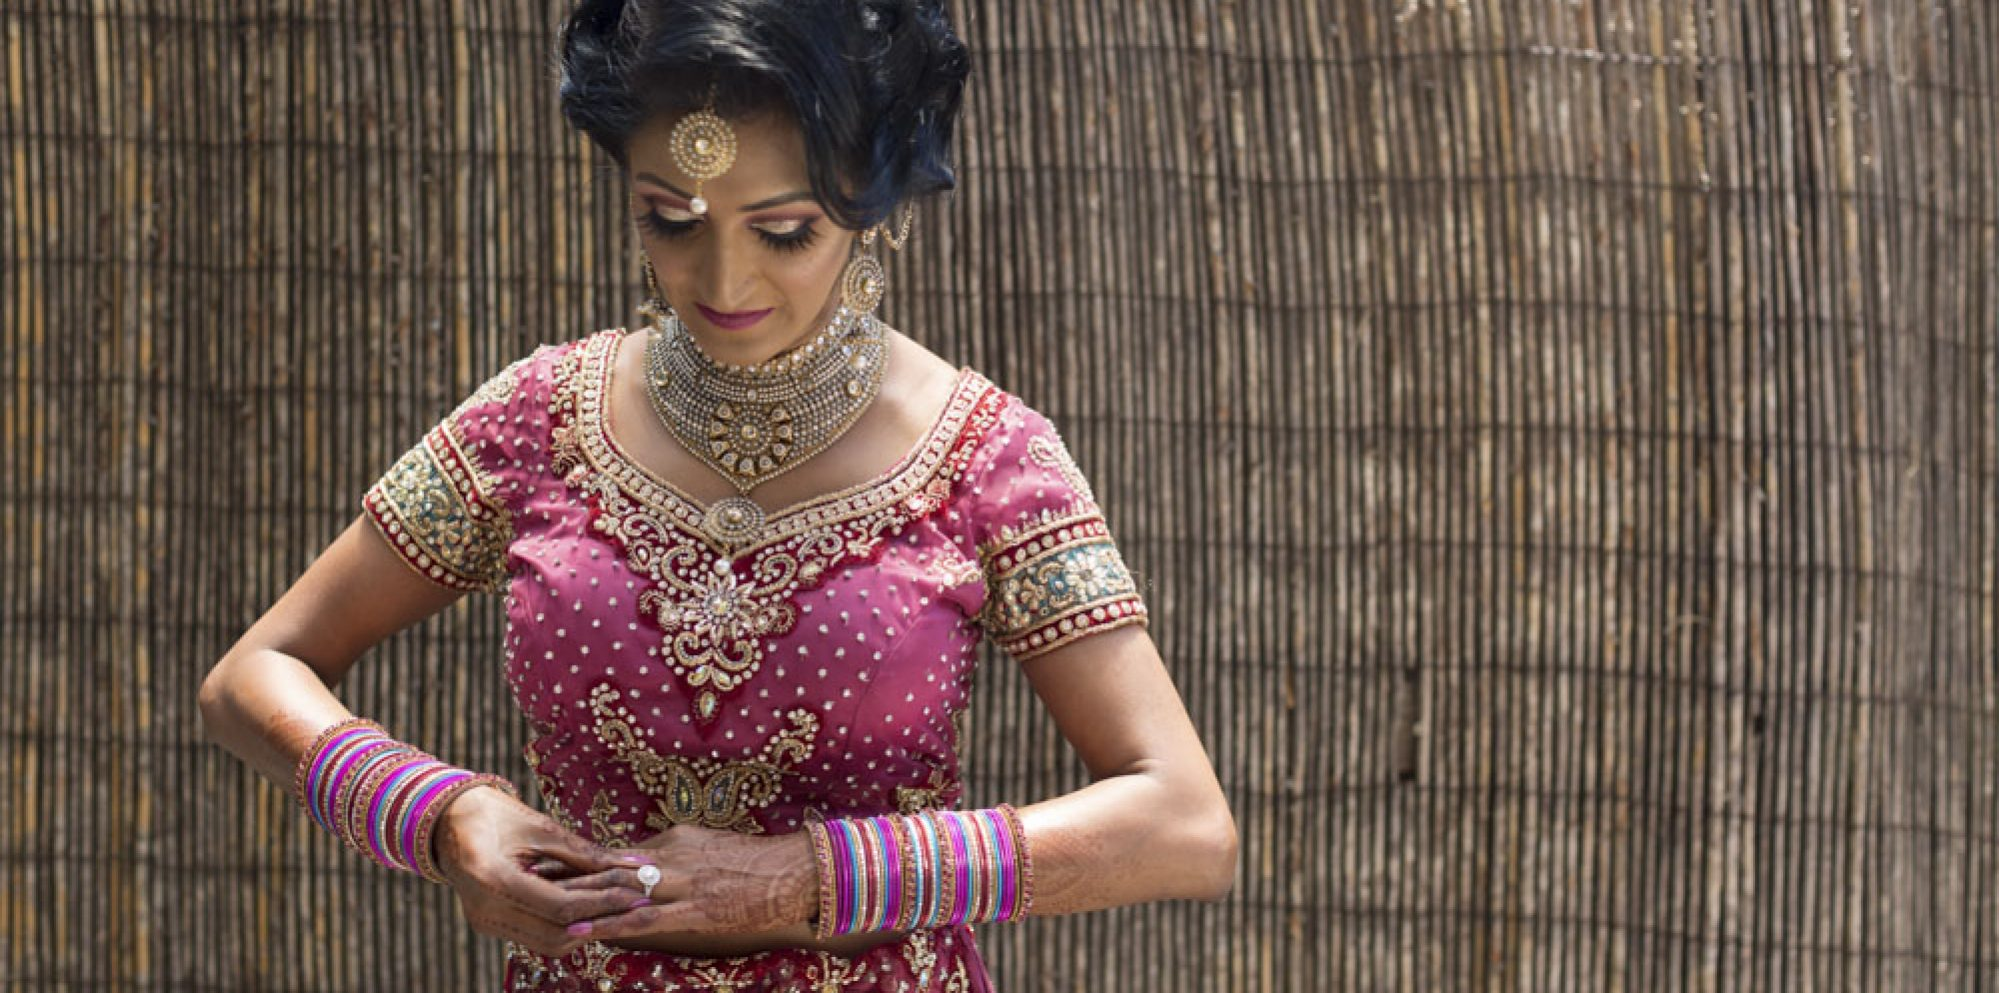 Top 5 indian bridal dress shops in melbourne